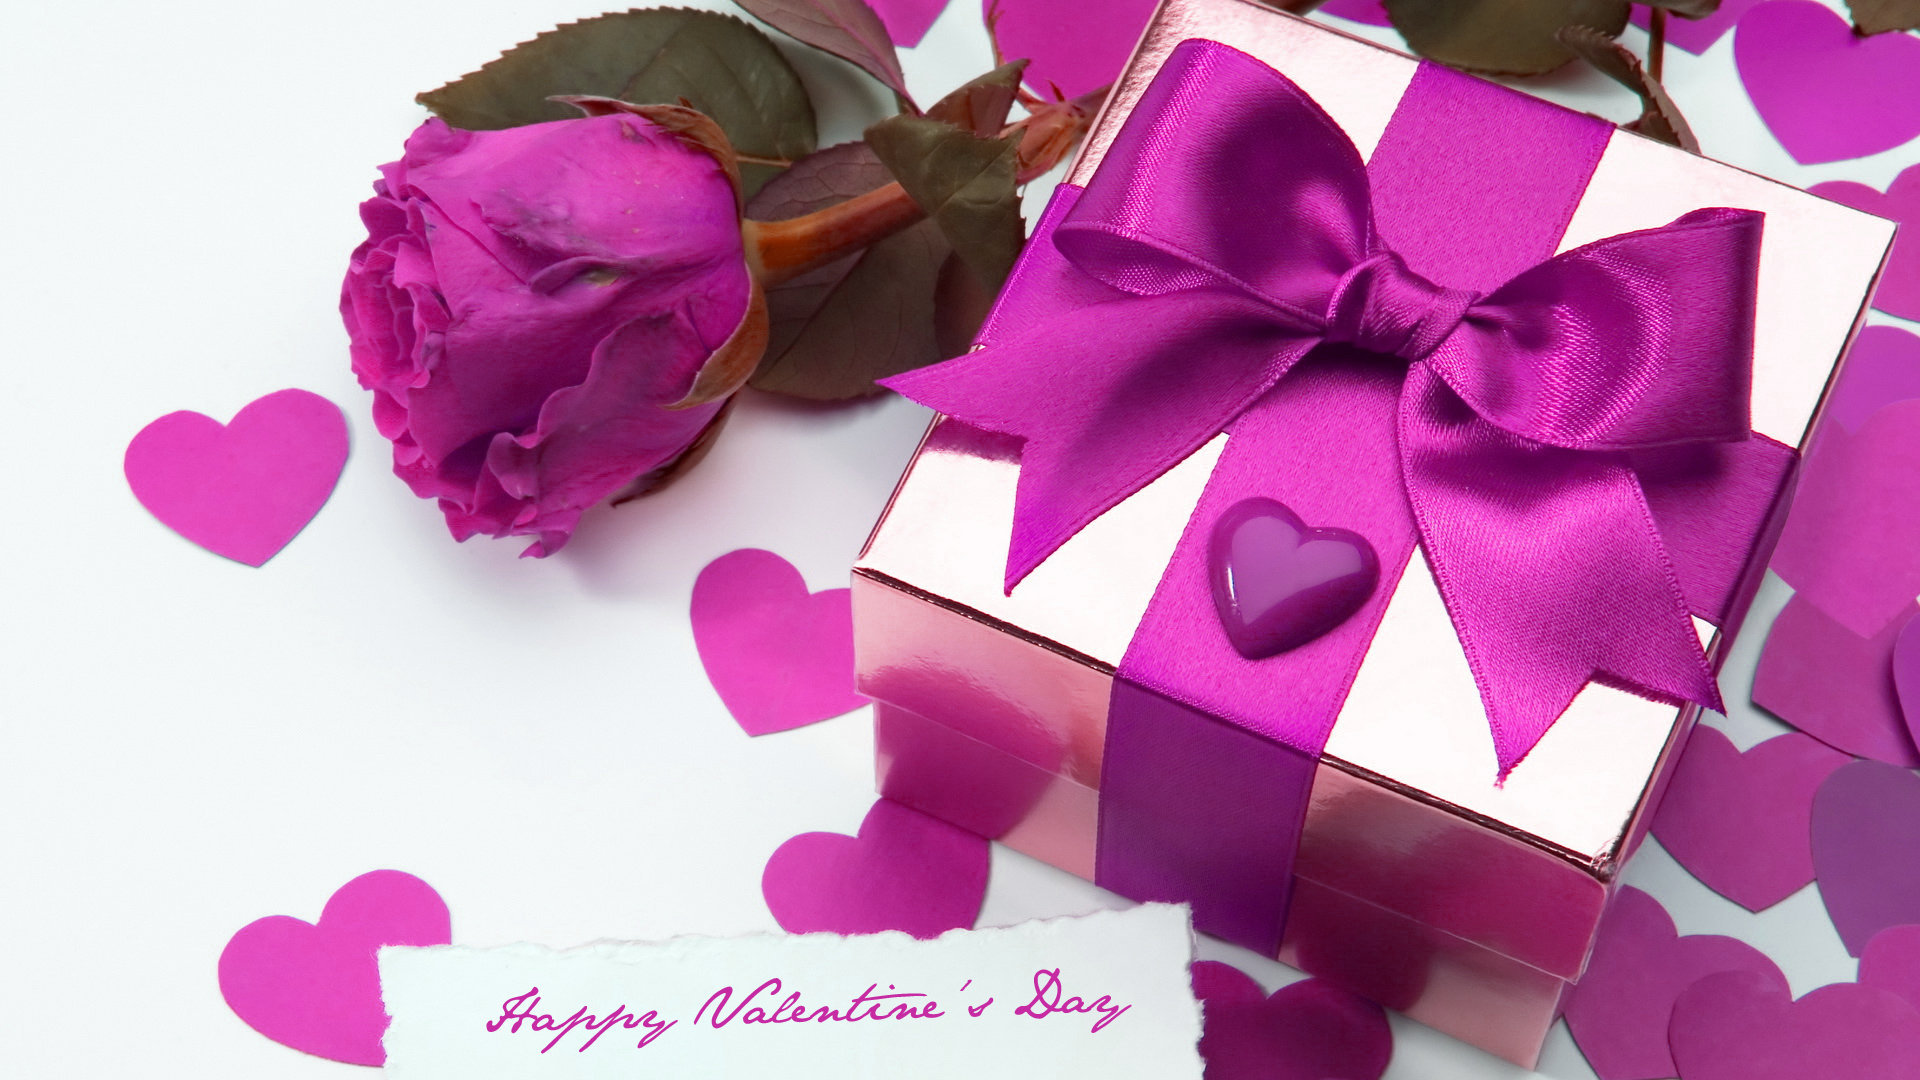 valentines day violet rose wallpaper free hd desktop